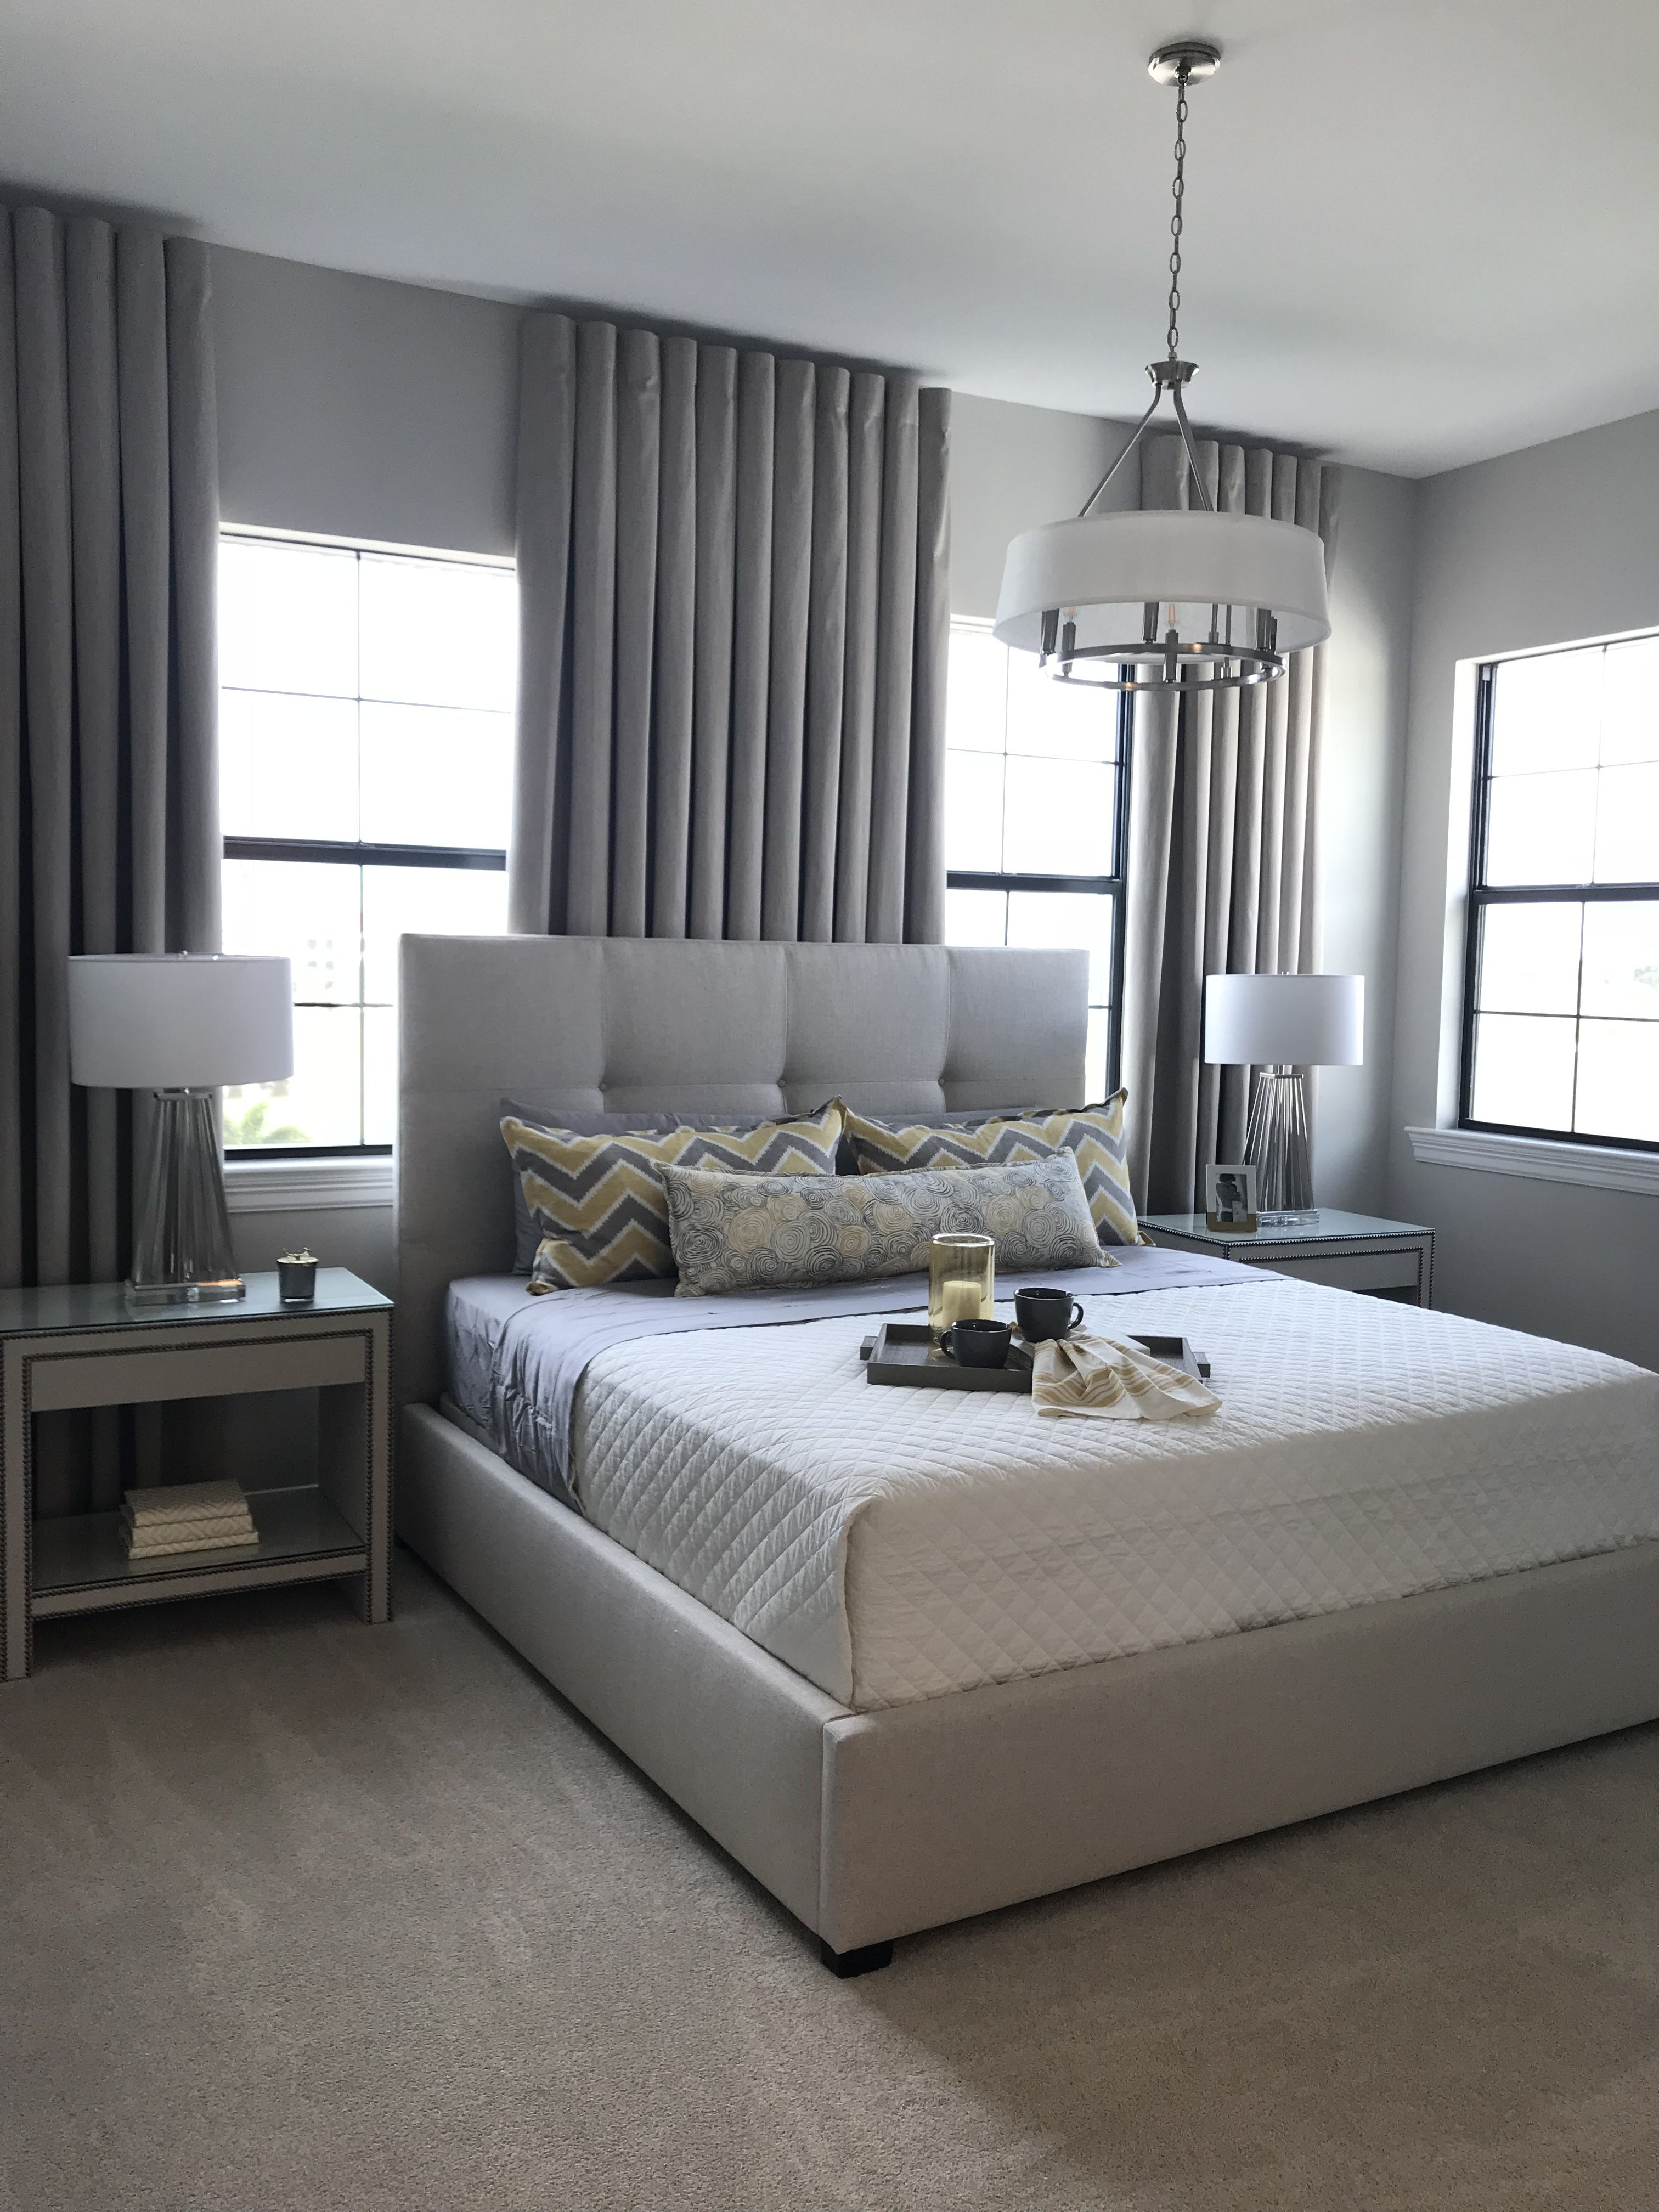 Pin by Laurie Walter on Bedrooms that are Zen White